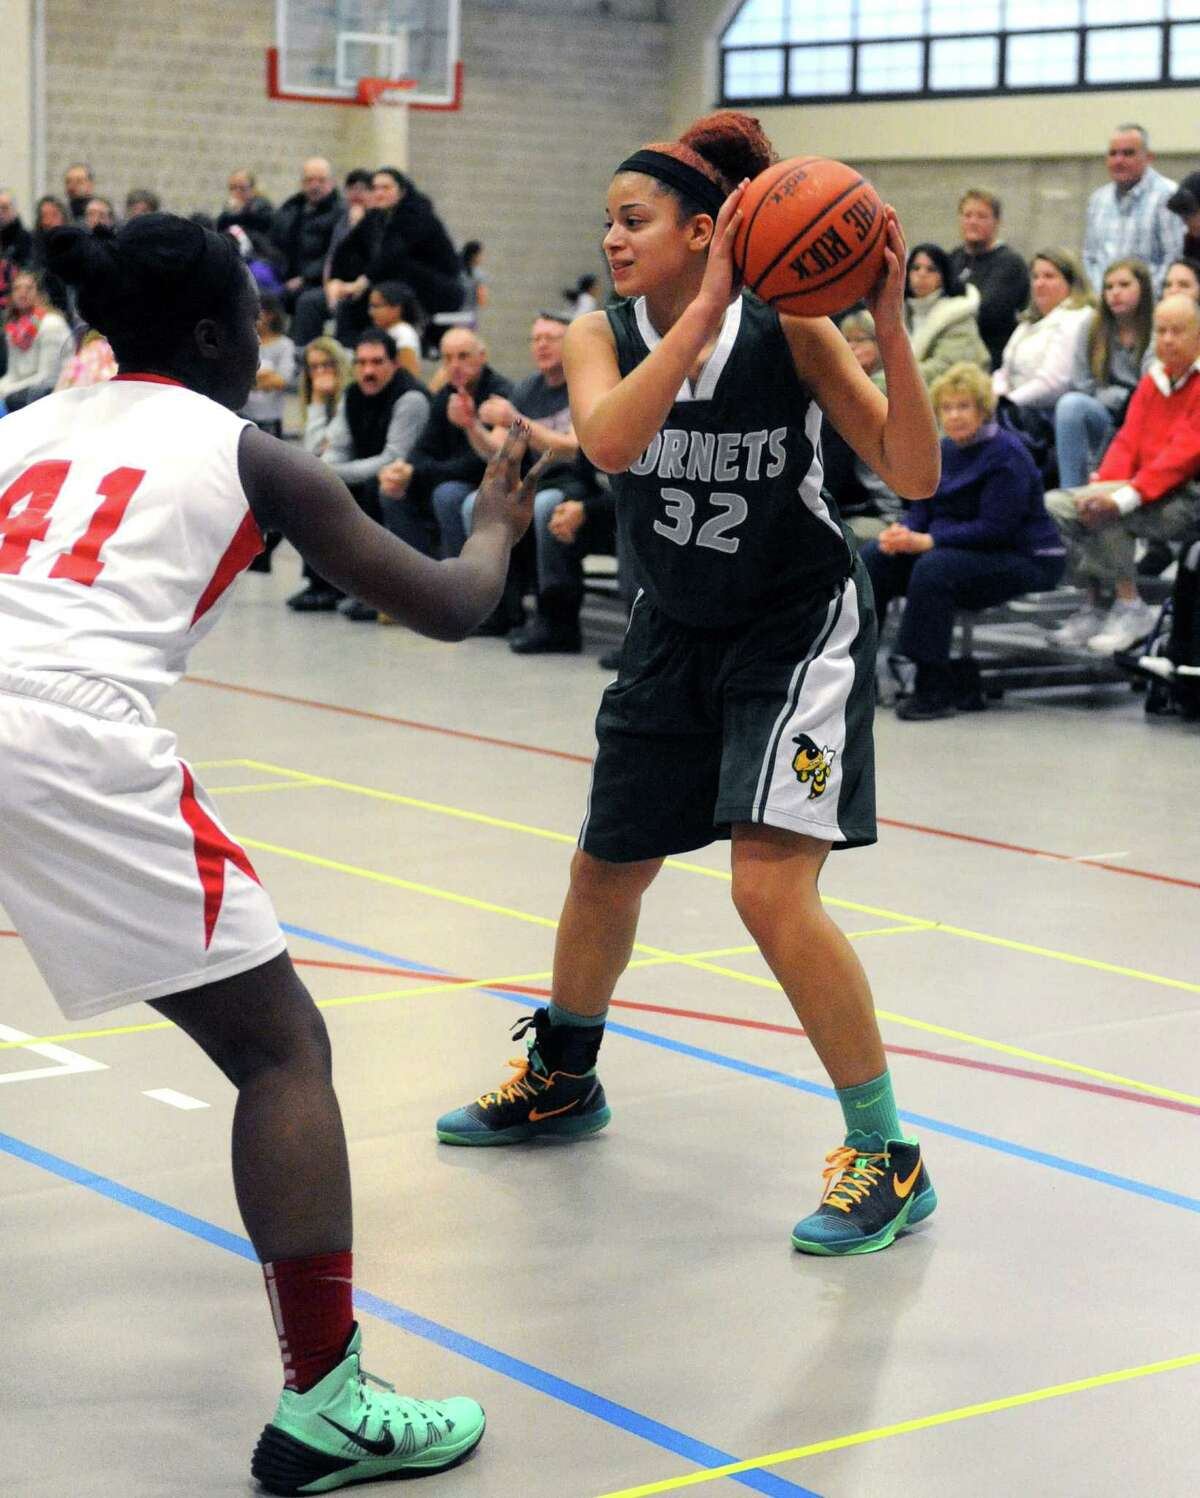 Heatly's Kyra Oeffler looks to pass during their high school basketball game against Emma Willard on Thursday Jan. 29, 2015 in Troy , N.Y. (Michael P. Farrell/Times Union)